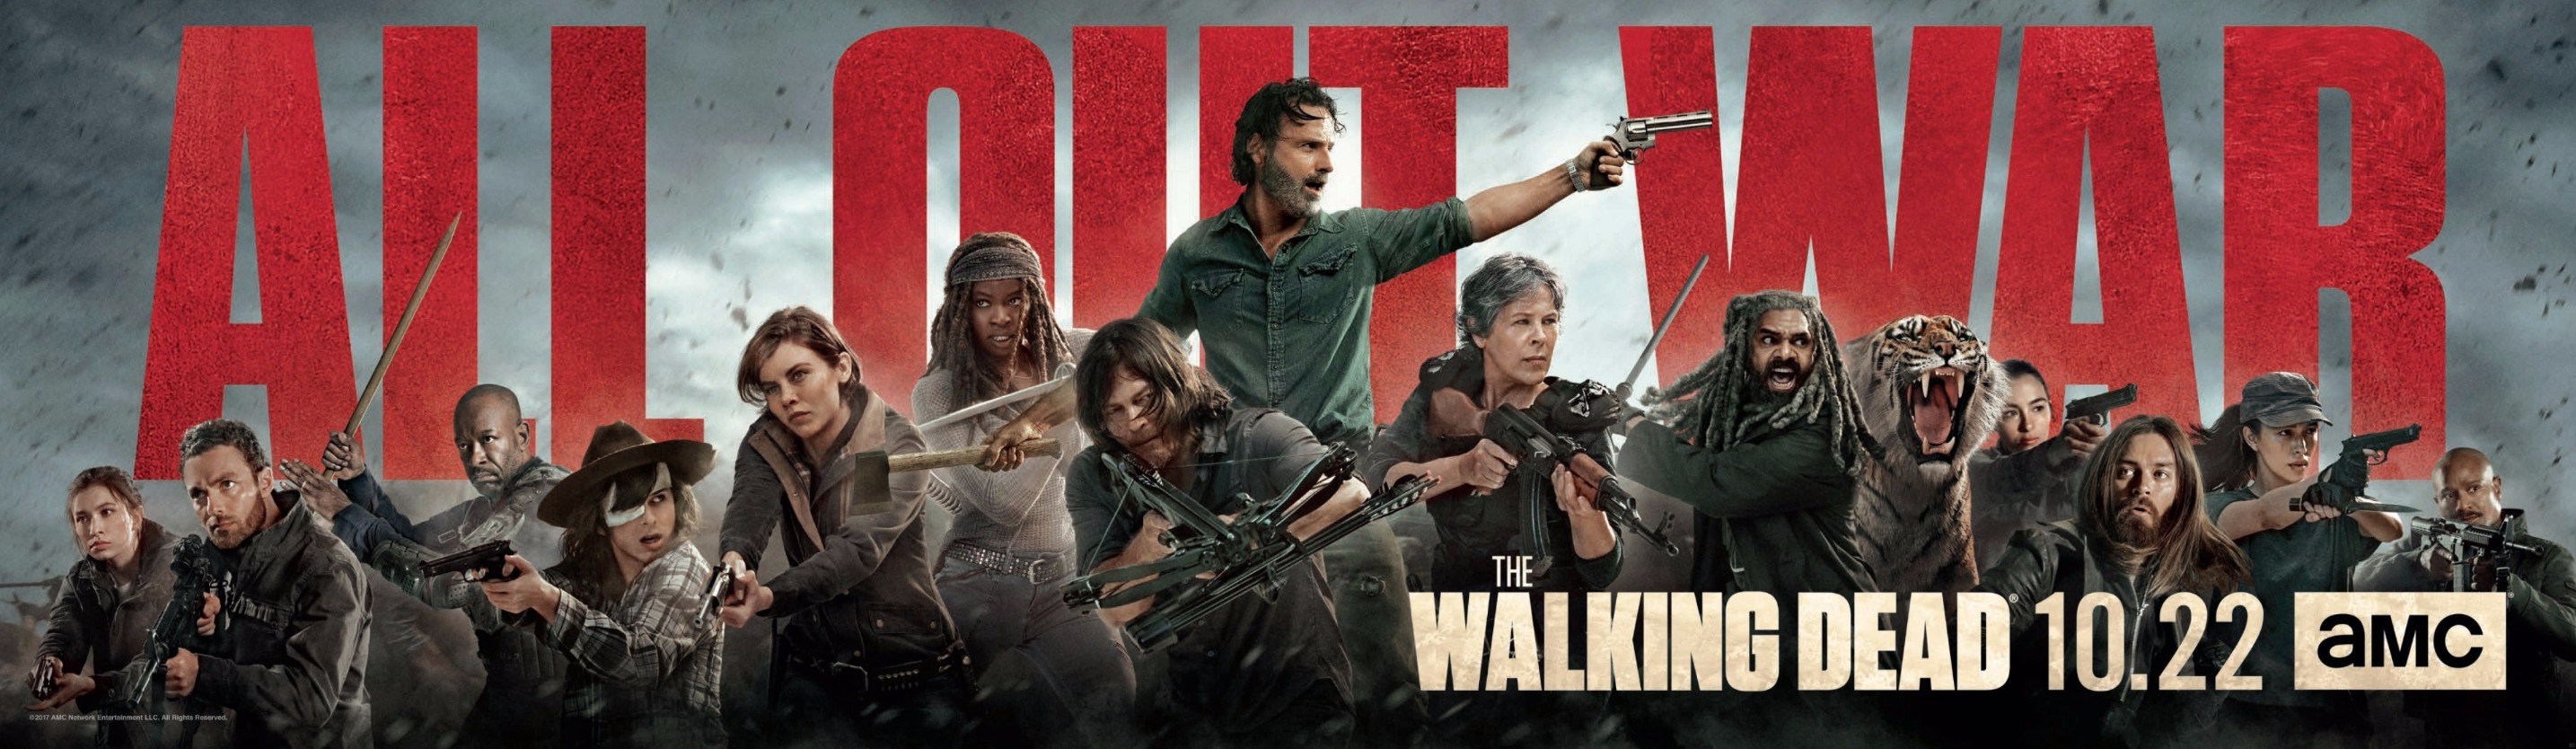 Epic Banner Image For The Walking Dead Season 8 Brings War